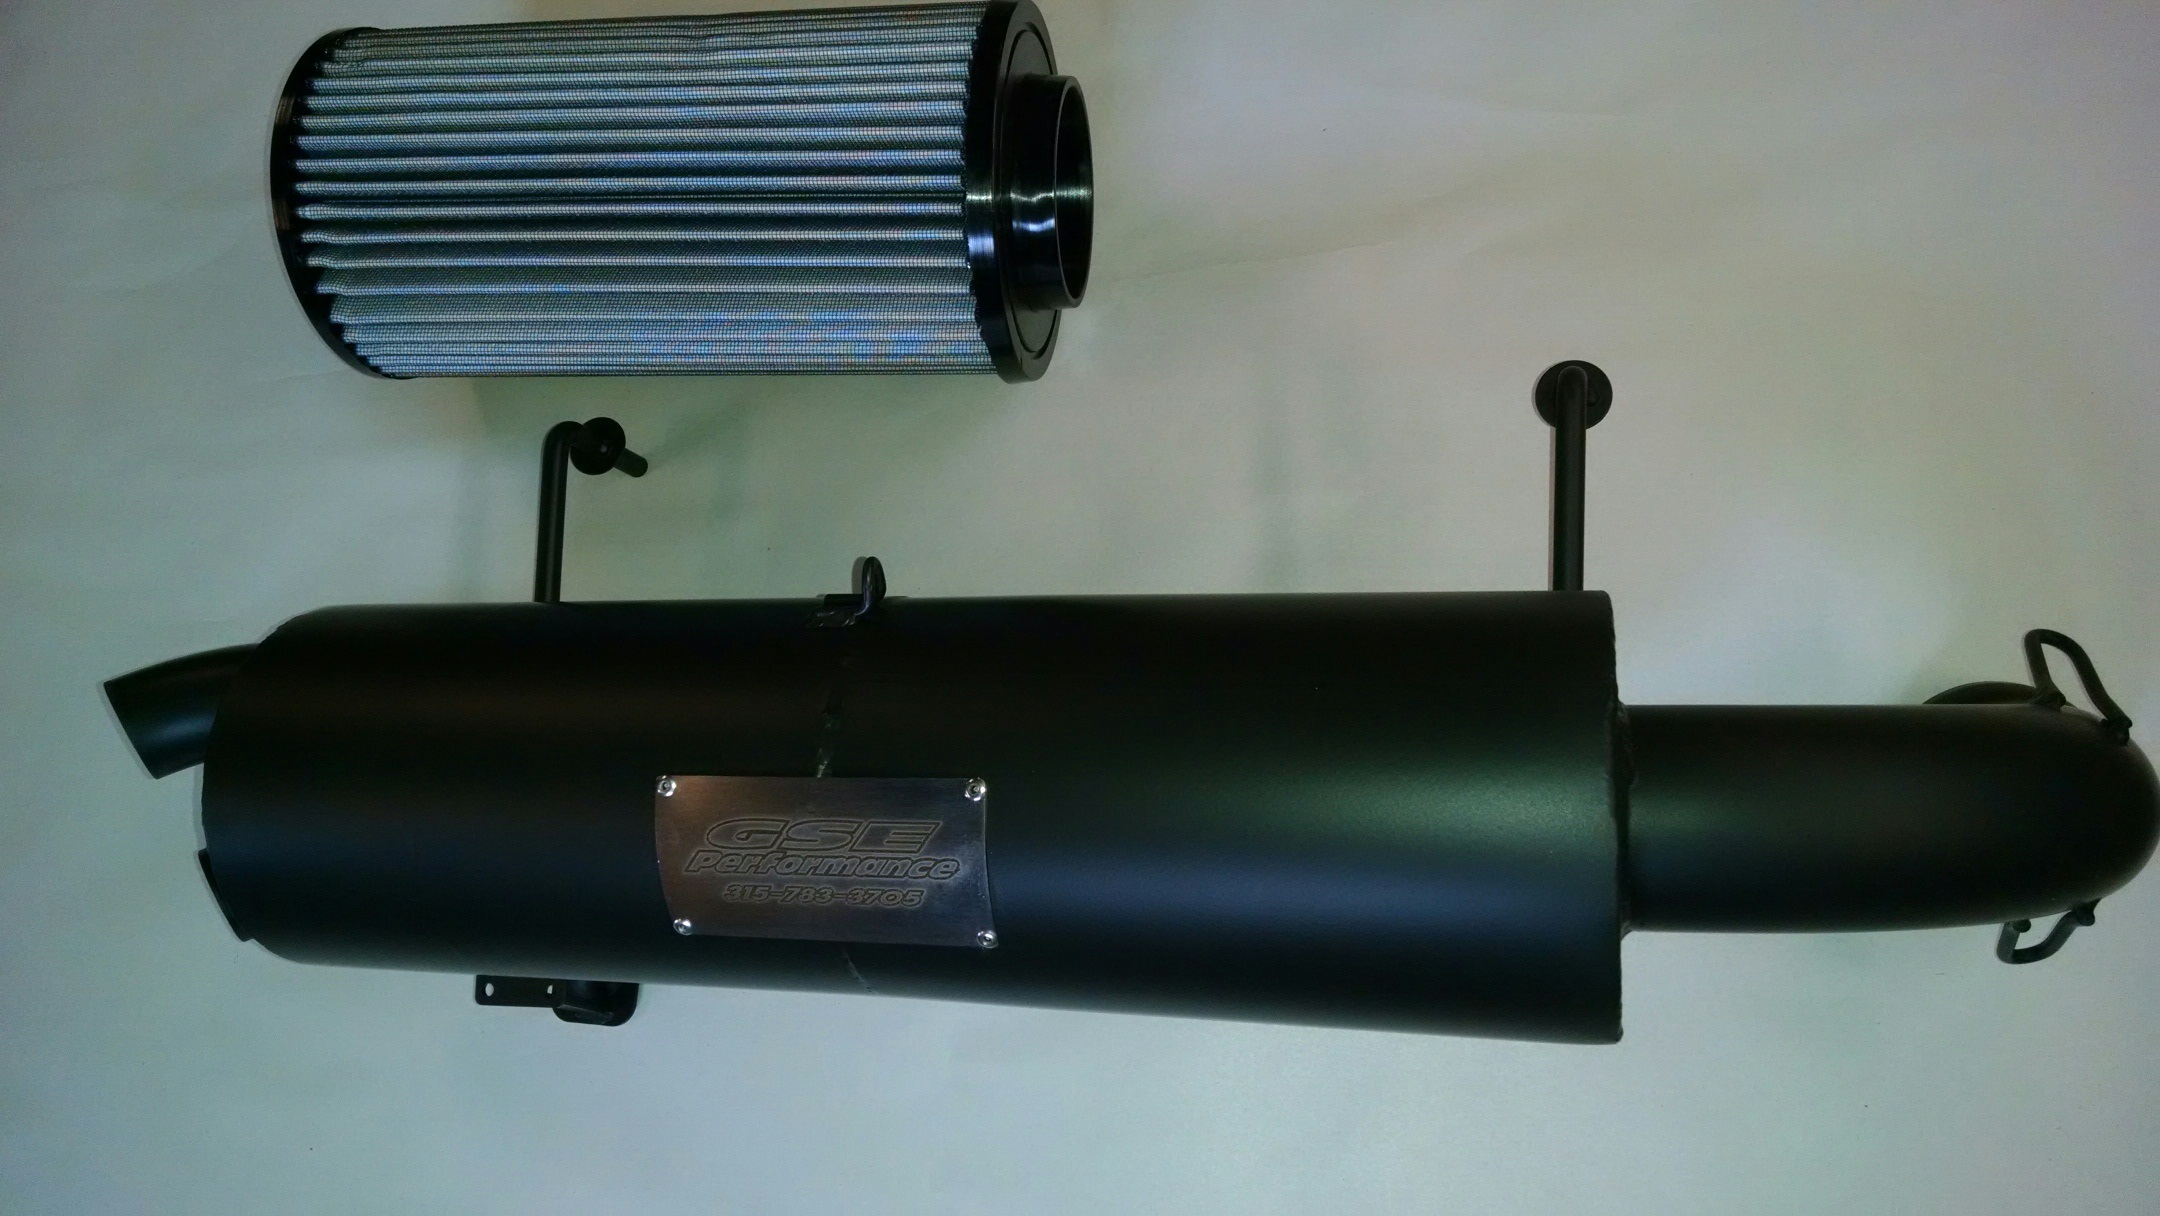 Polaris Rzr 1000 Trail Tamer Muffler High Flow Air Filter Gse Webb Fuel Filters Lightbox